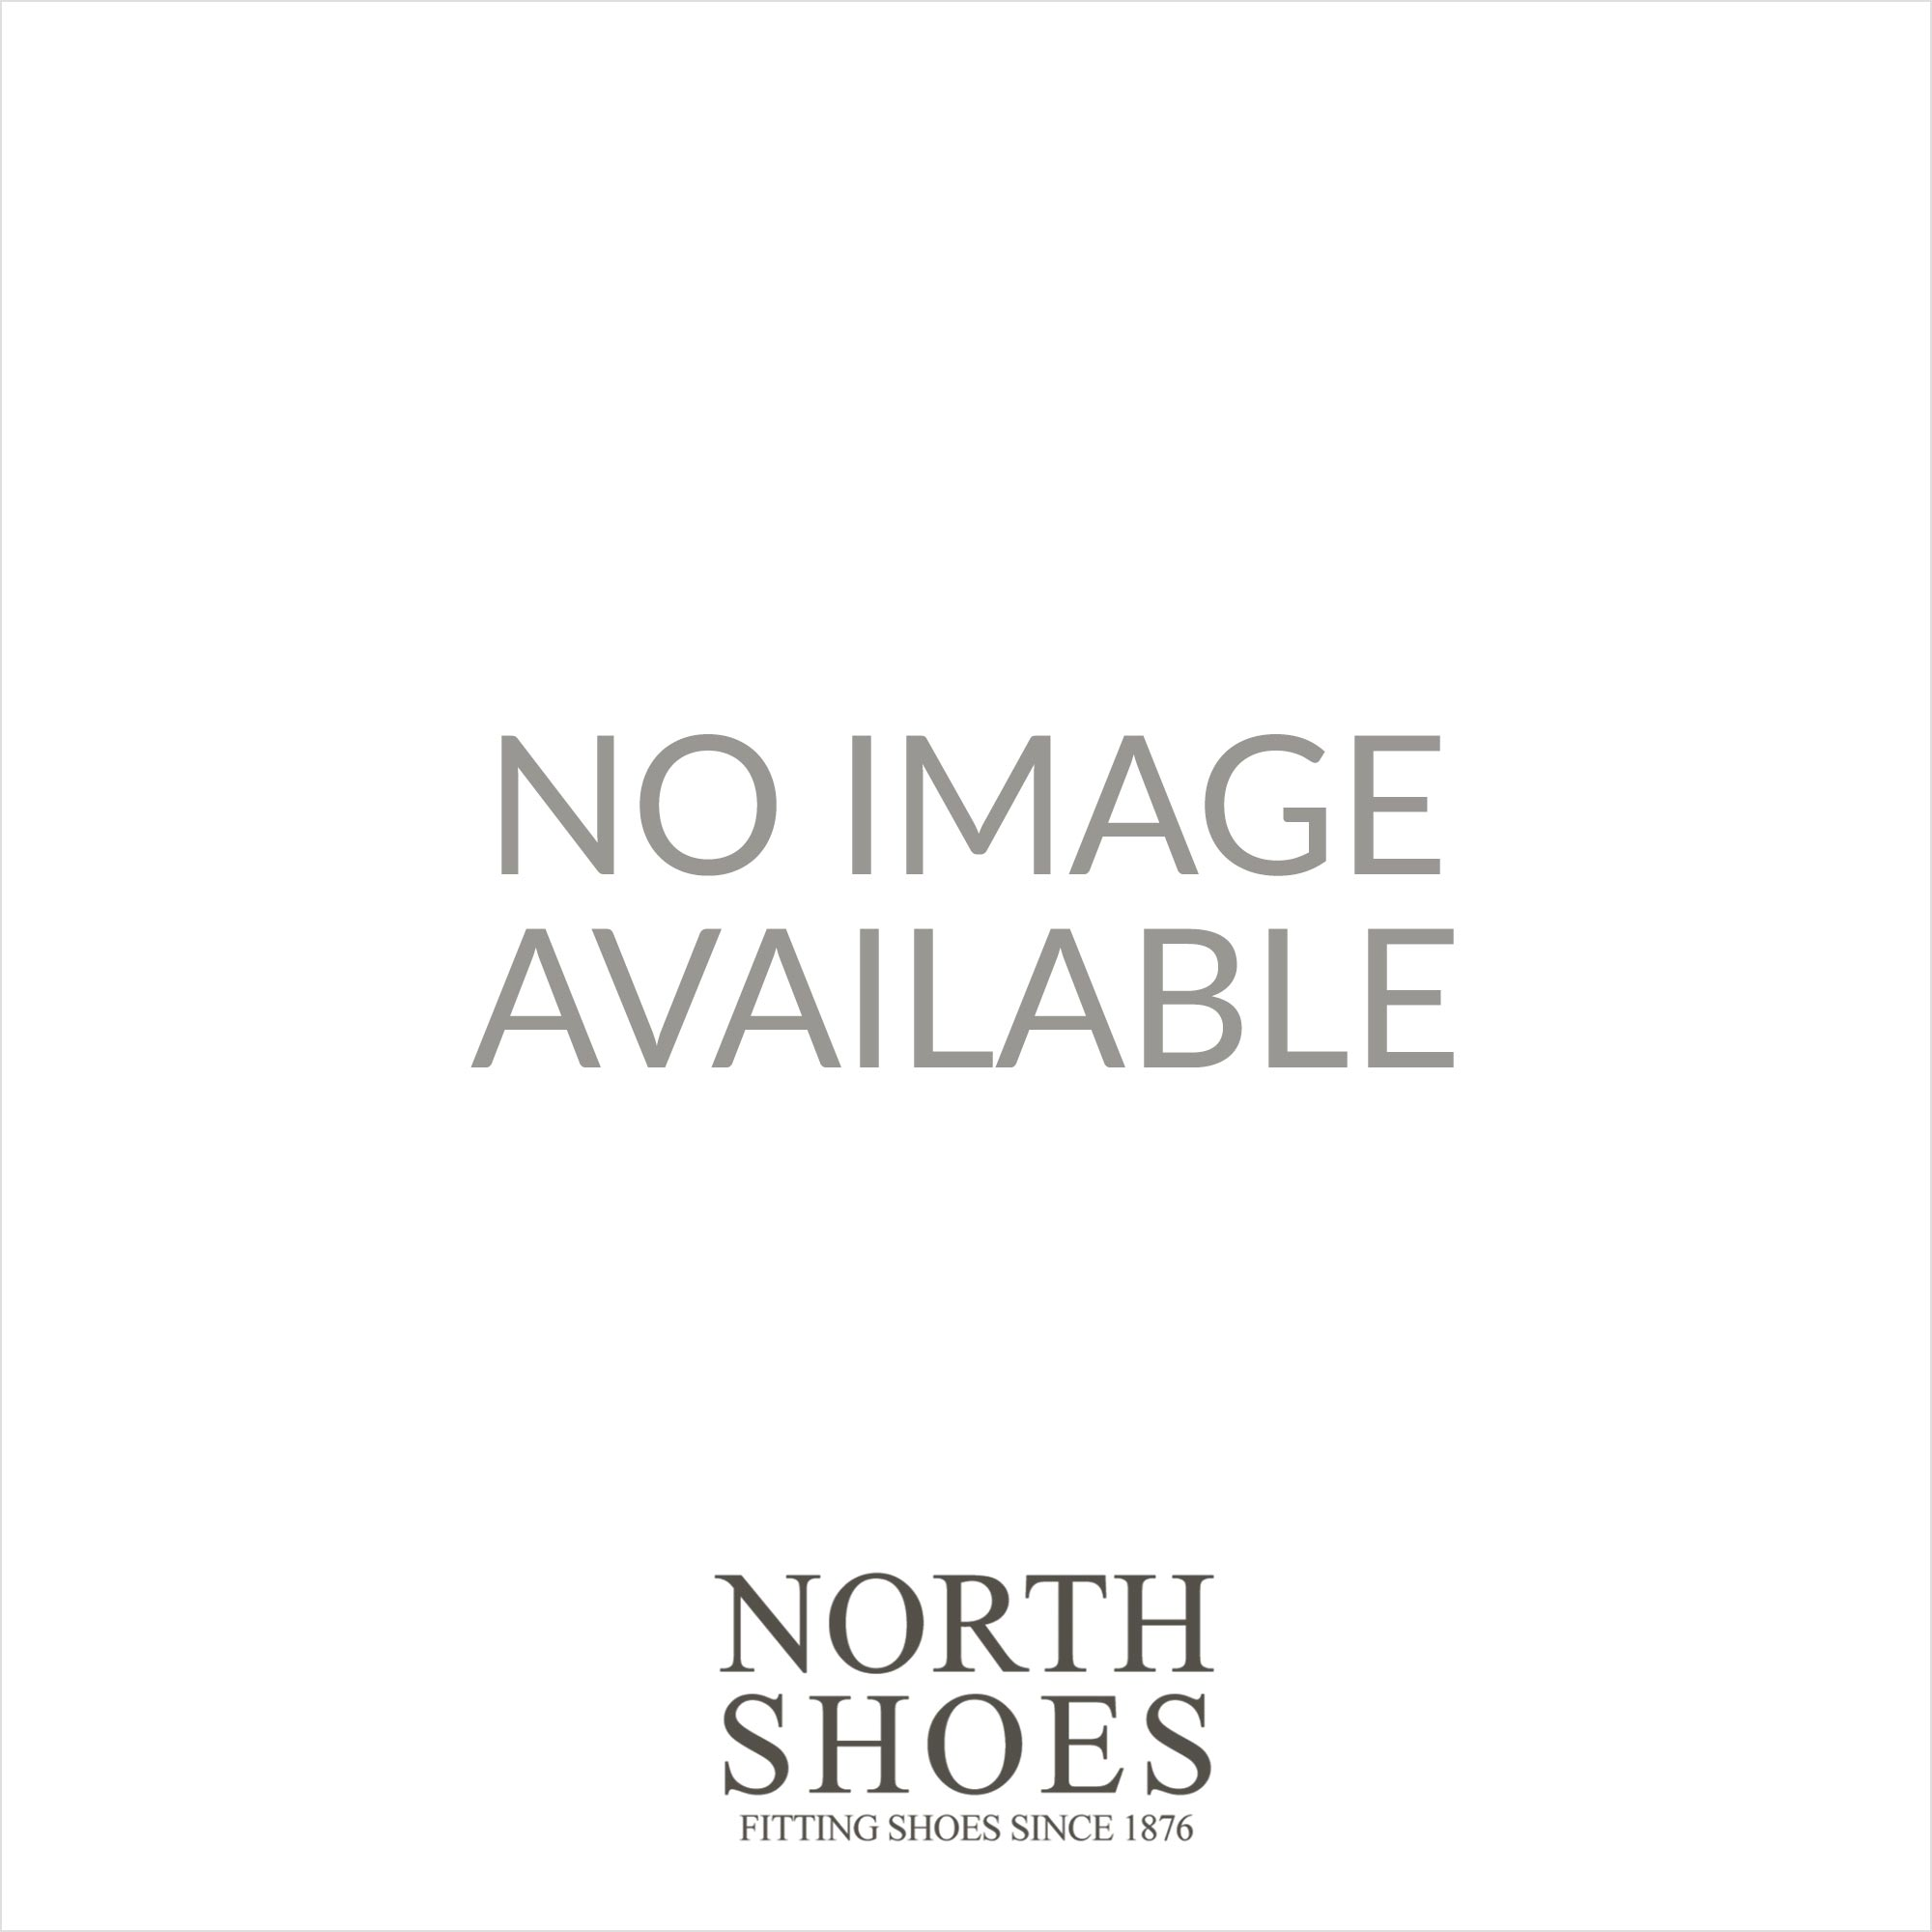 62459-14 Navy Womens Wedge Strapy Sandals